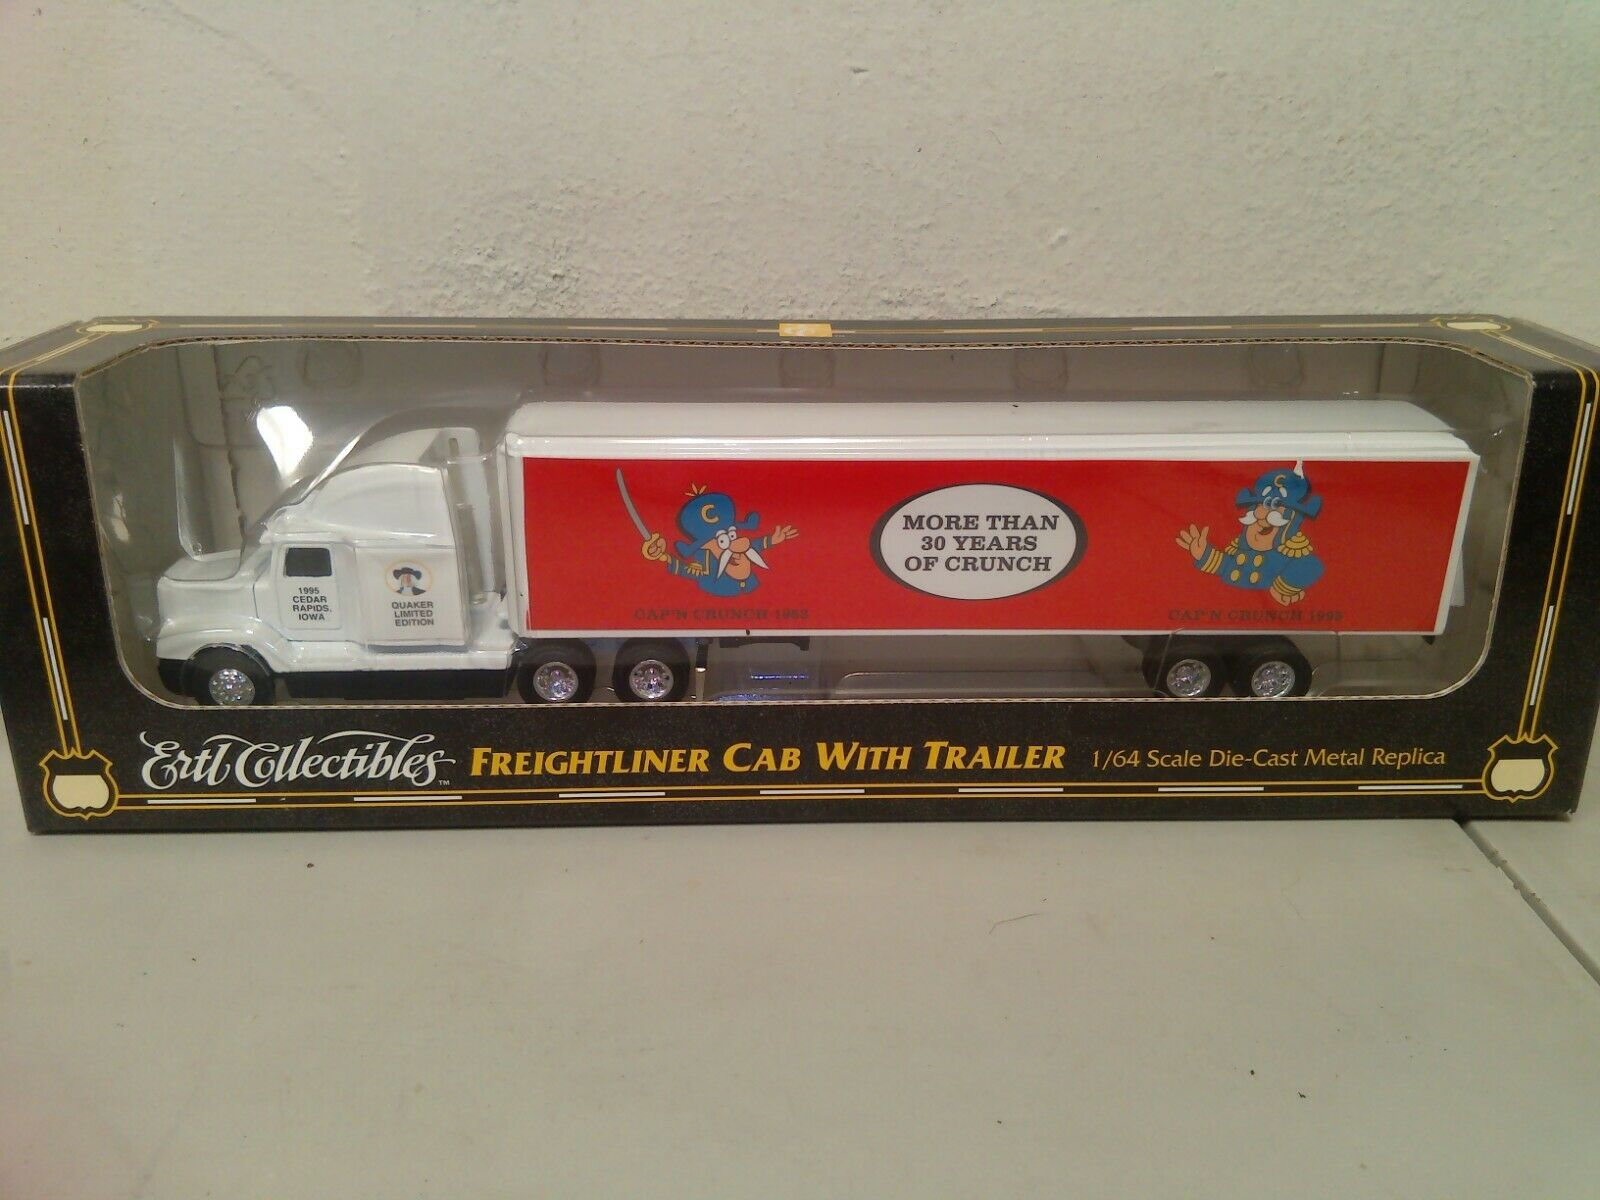 ERTL COLLECTIBLES FREIGHTLINER RARE CAPTAIN CRUNCH 1/64TH SCALE